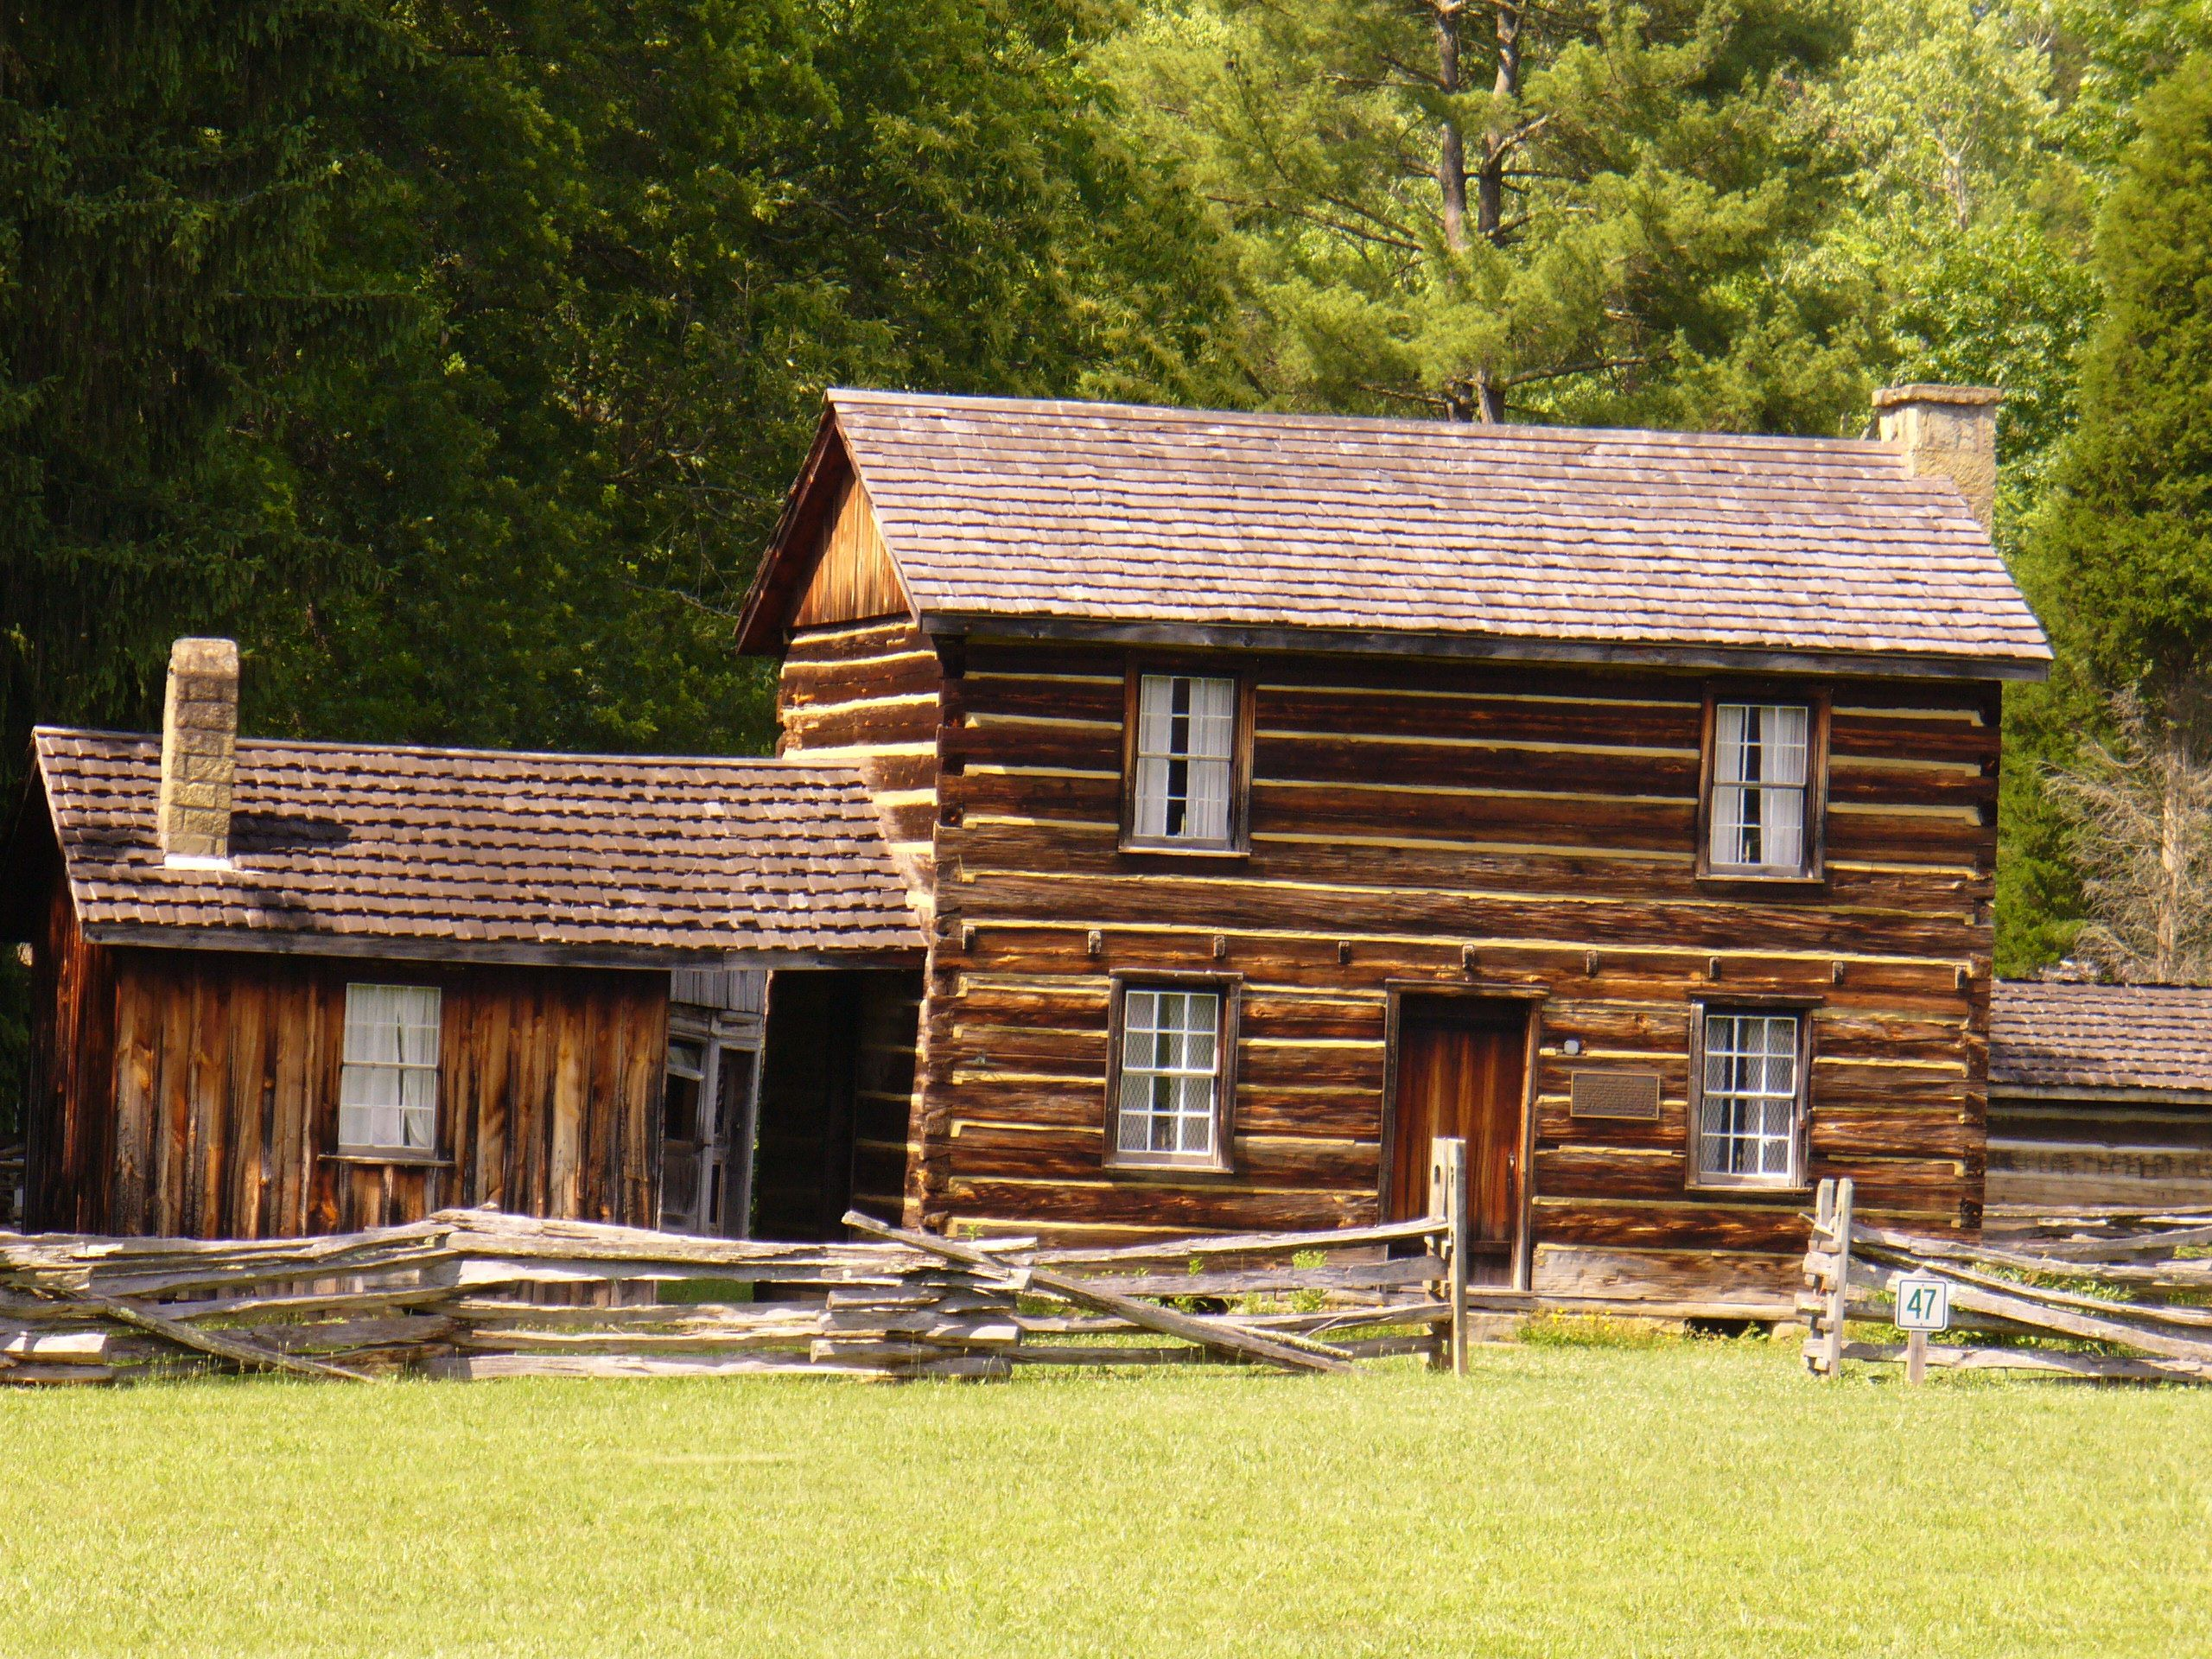 cabins west log harman luxury by of s surrounded snow bedroom virginia cabin covered exterior ground our tour at view